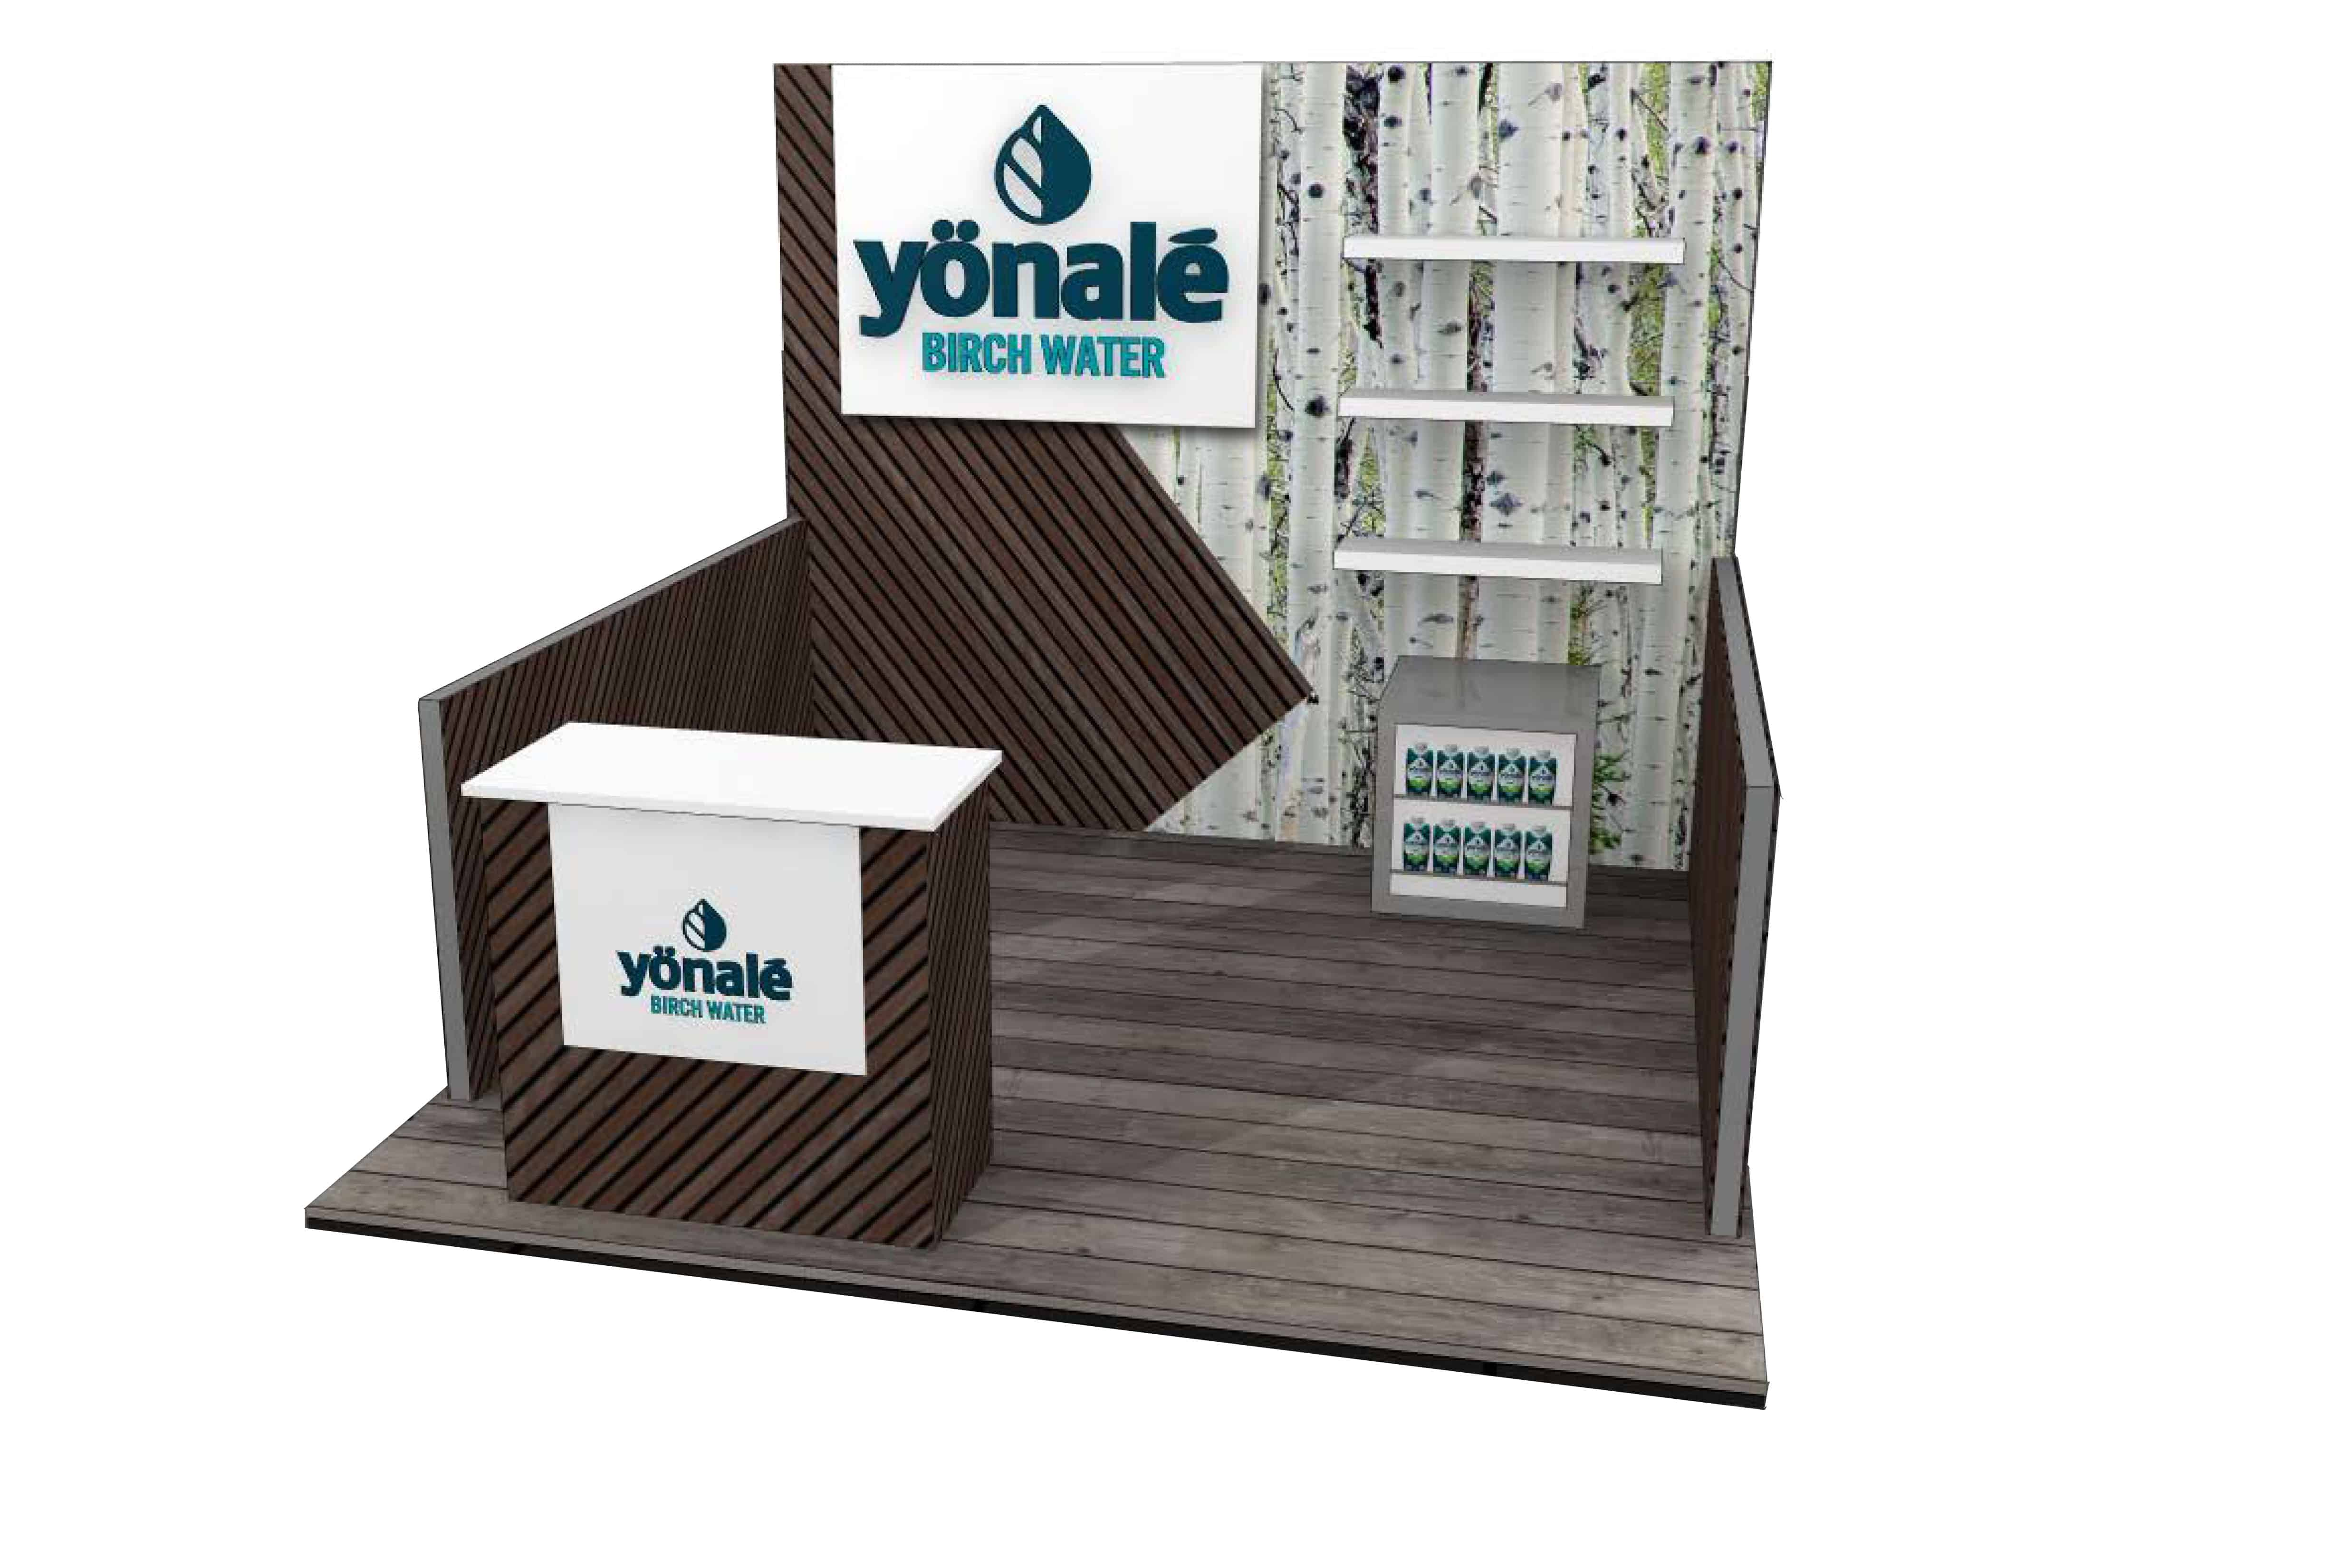 Yonale - 10x10 Trade Show Booth - Booth Design Ideas